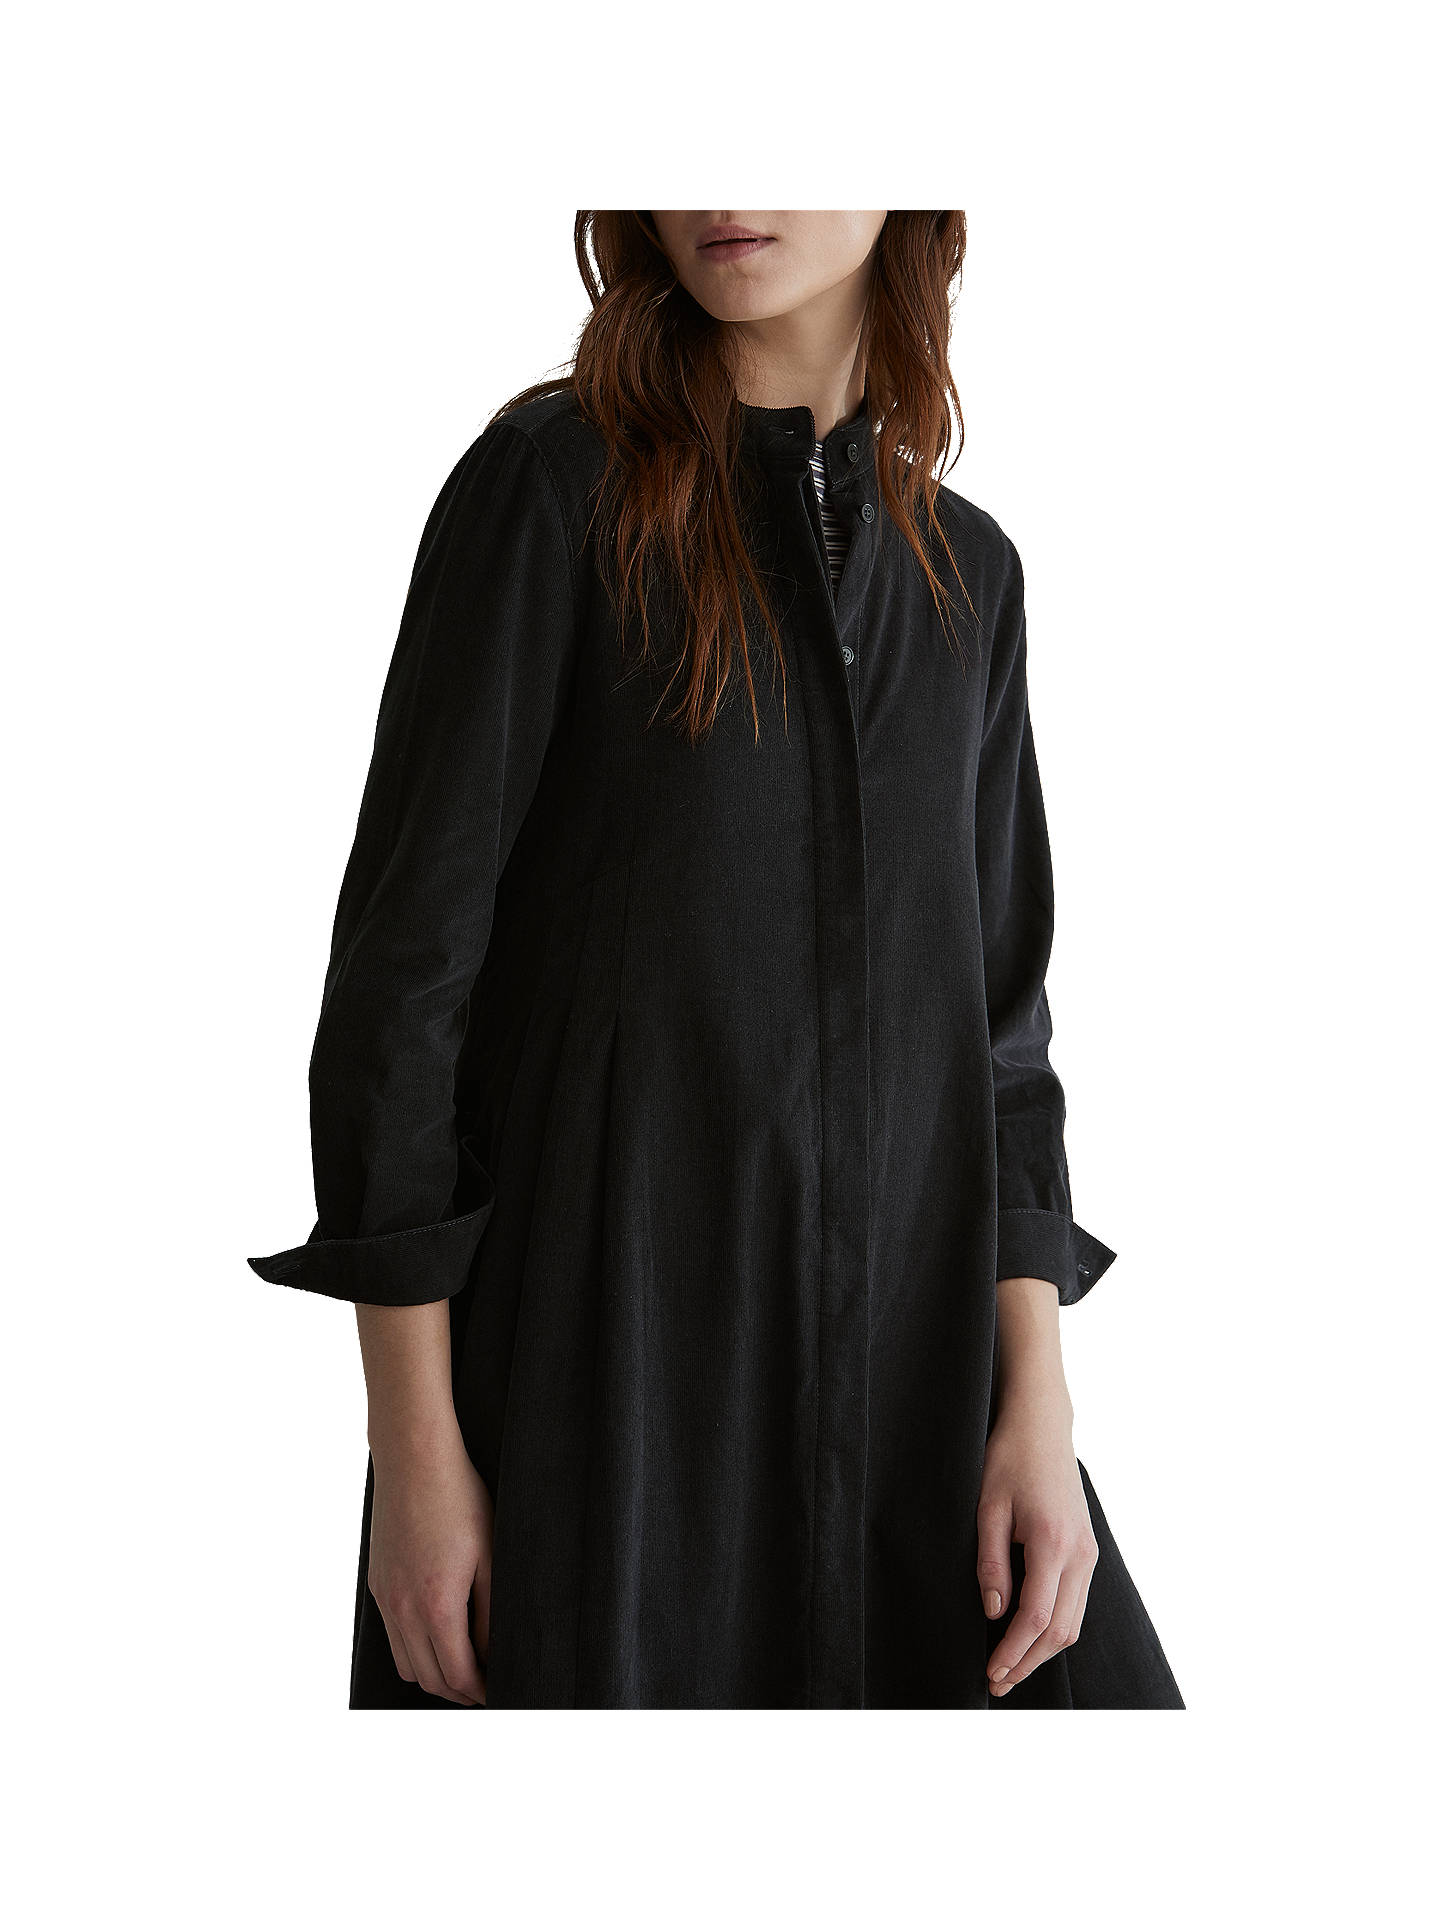 BuyToast Needlecord Swing Shirt Dress, Black Olive, 8 Online at johnlewis.com